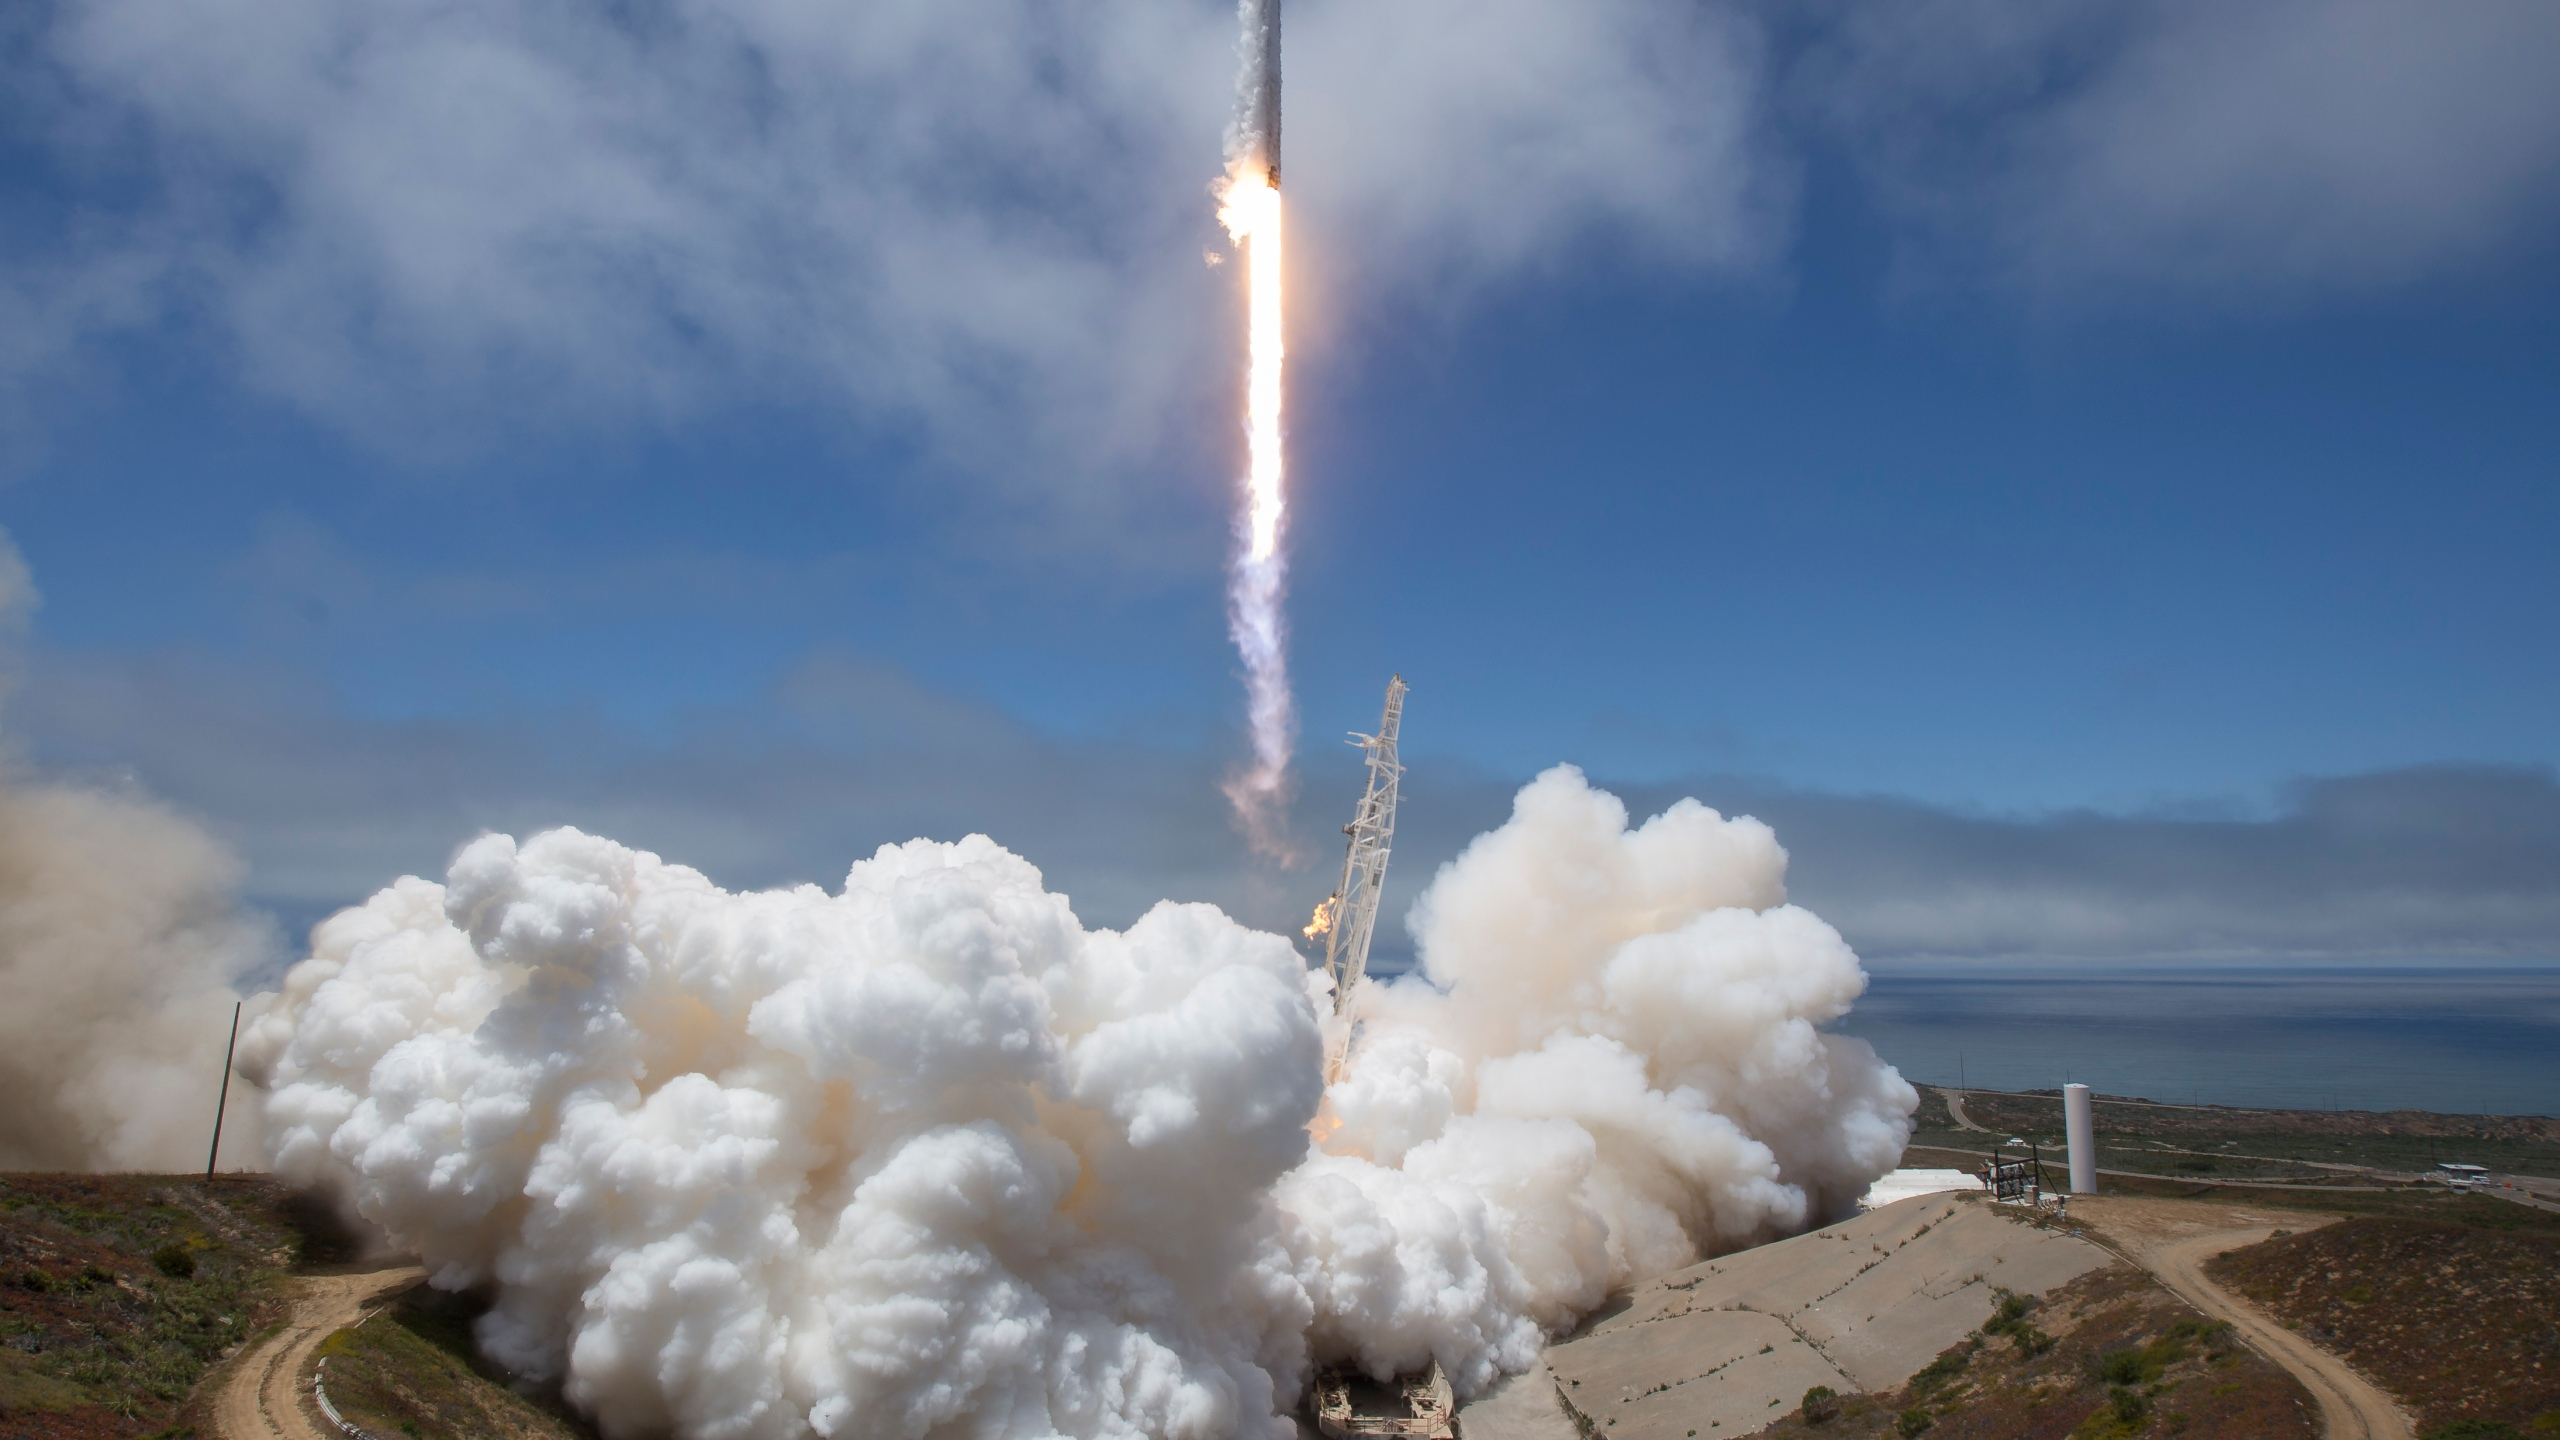 In this handout image provided by NASA, the NASA/German Research Centre for Geosciences GRACE Follow-On spacecraft launch onboard a SpaceX Falcon 9 rocket, Tuesday, May 22, 2018, from Space Launch Complex 4E at Vandenberg Air Force Base in California. (Credit: Bill Ingalls/NASA via Getty Images)